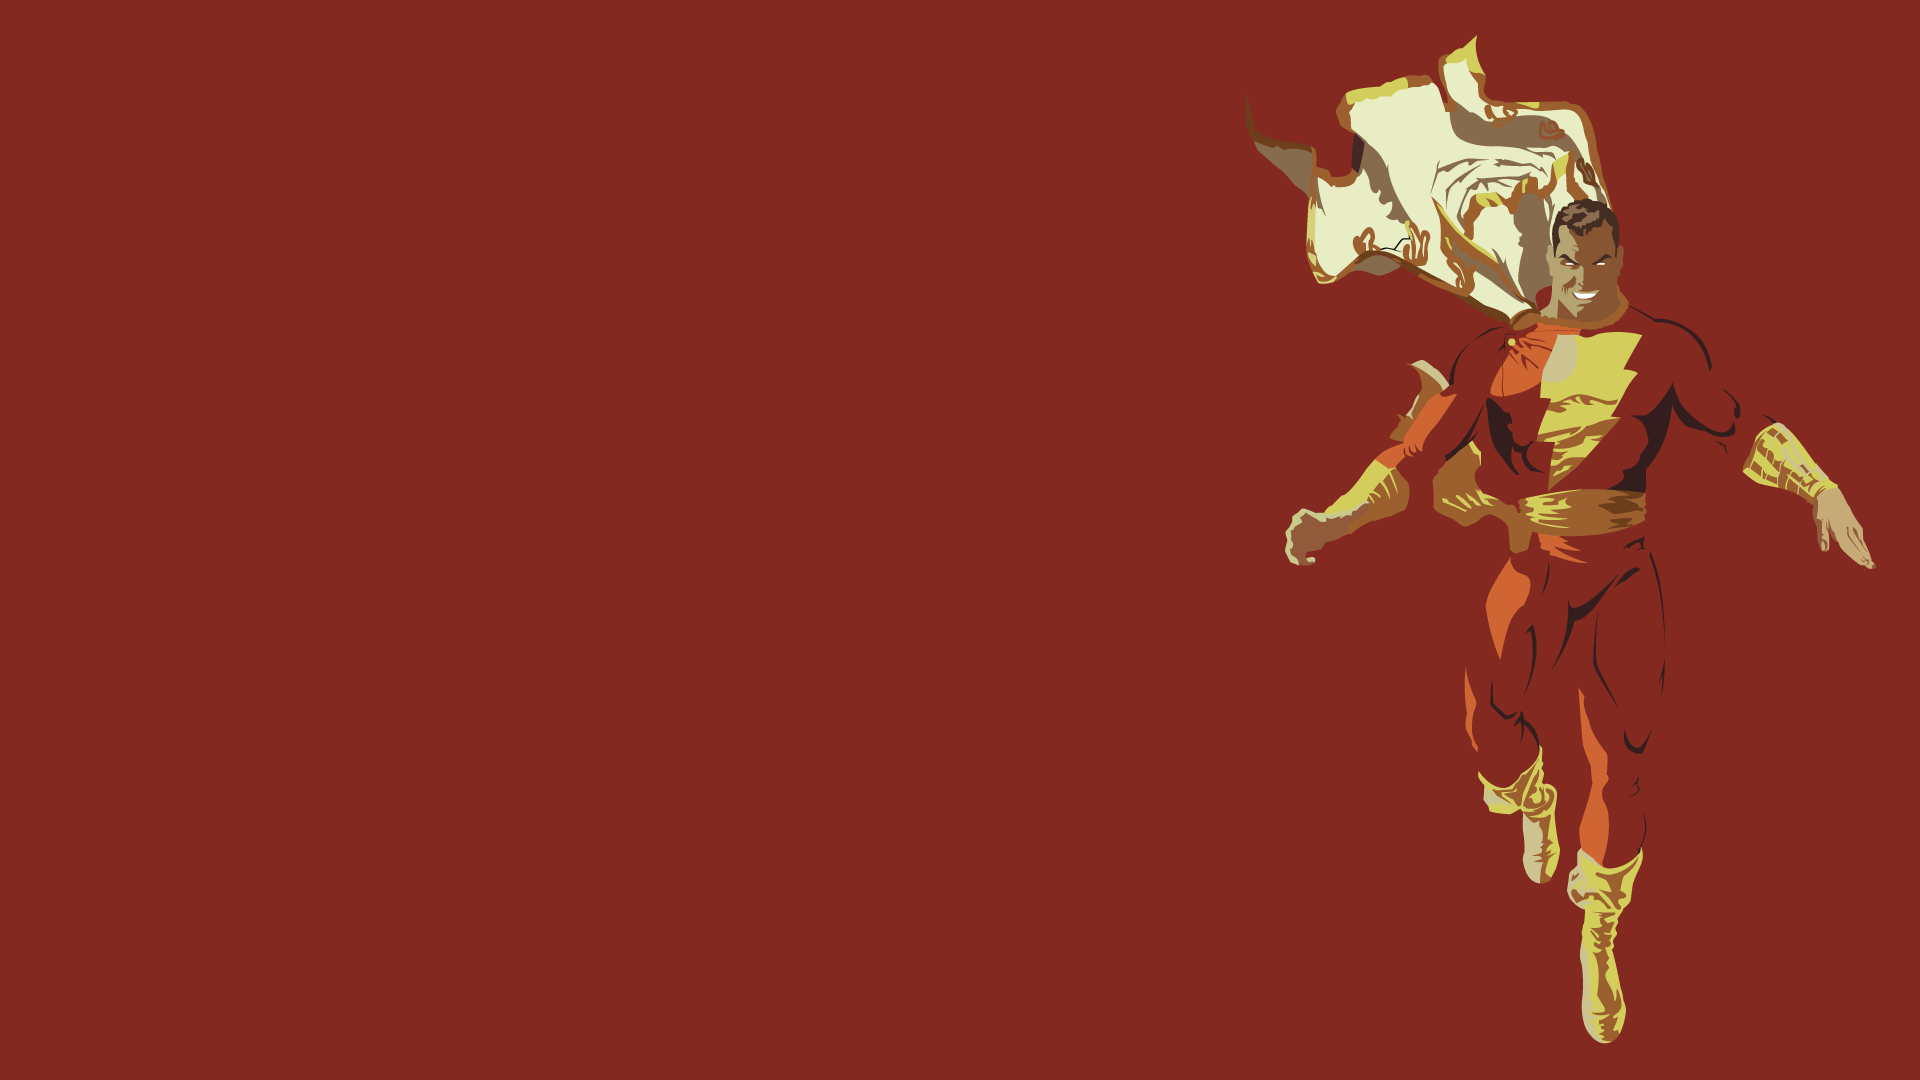 1920x1080 - Shazam! Wallpapers 13